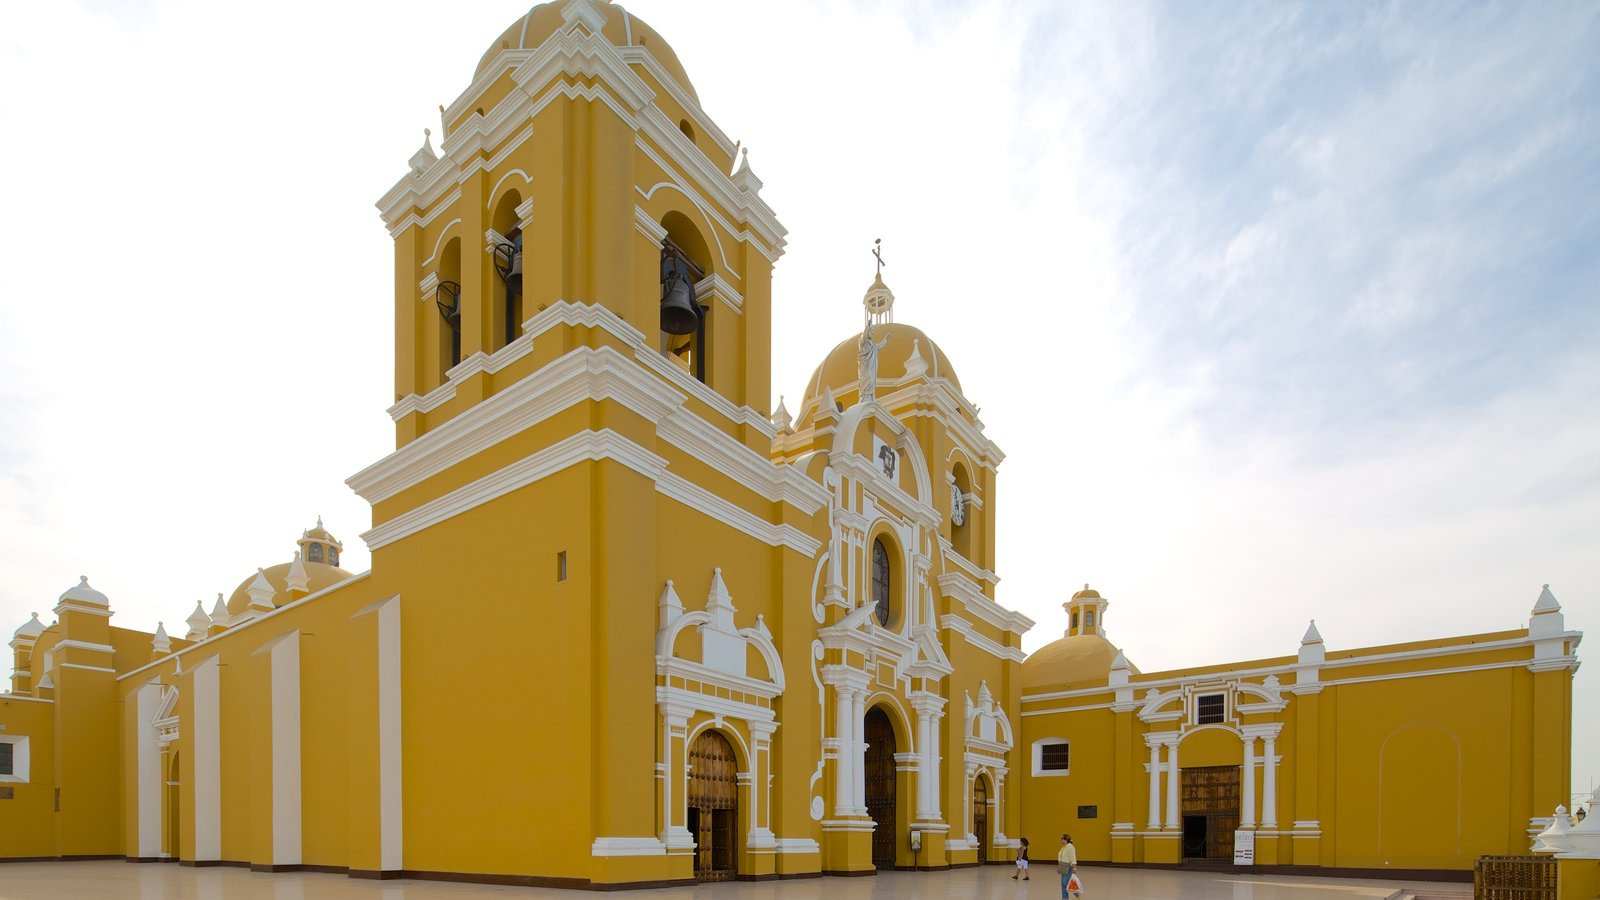 Trujillo Cathedral which includes a church or cathedral